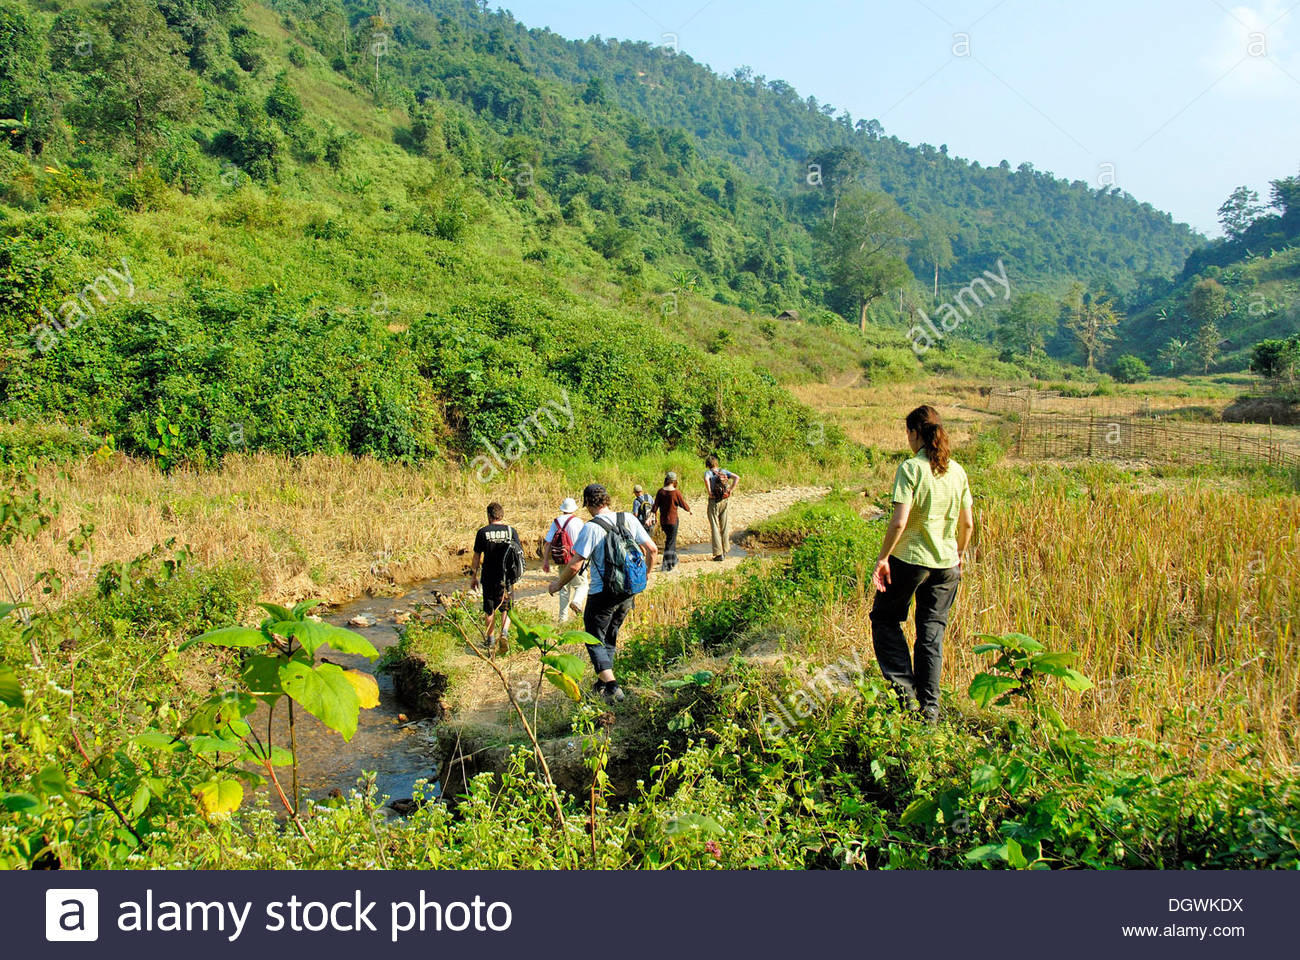 Trekking, hiking in a valley of rice fields in Sanghouey Ban, Muang Khoua district, Phongsali province, Laos, Southeast Asia - Stock Image